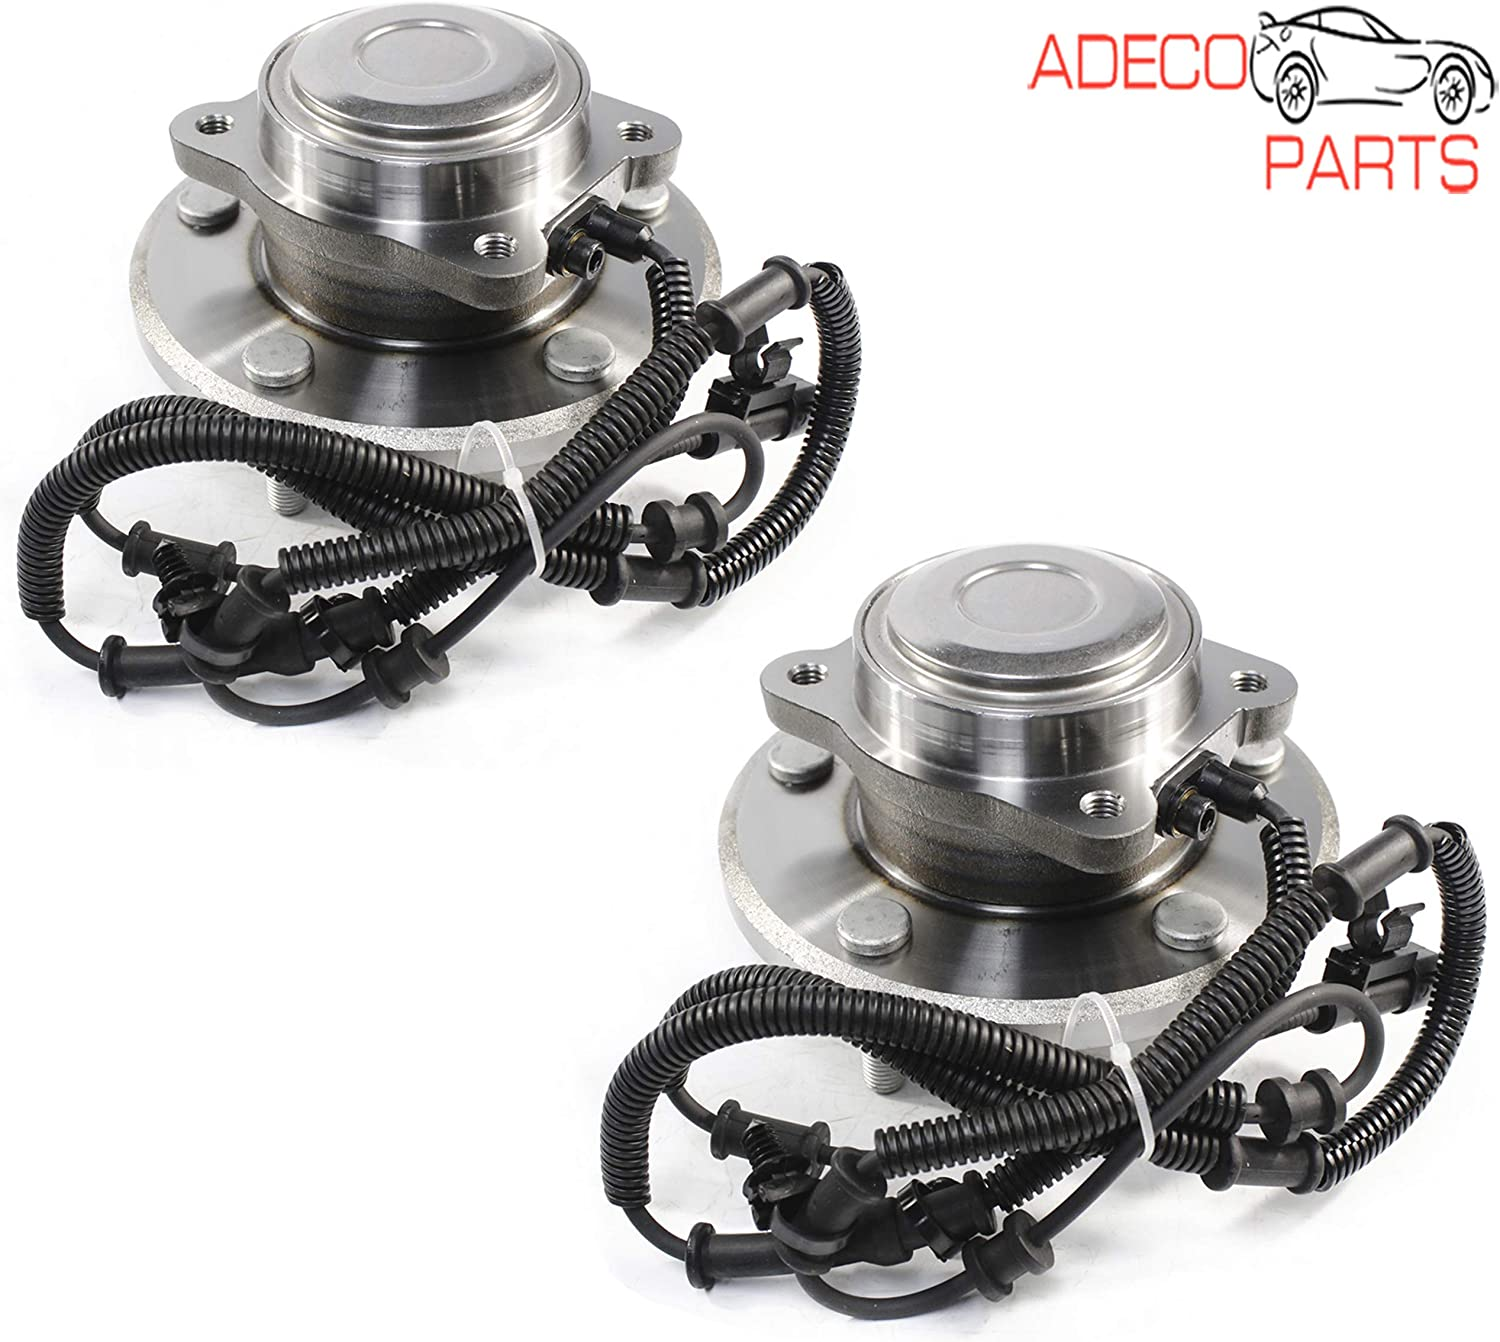 AdecoAutoParts/© Front and Rear Wheel bearing Hub assembly for Dodge Grand Caravan Chrysler Town /& Country Ram C//V Volkswagen Routan HA590447 HA590448